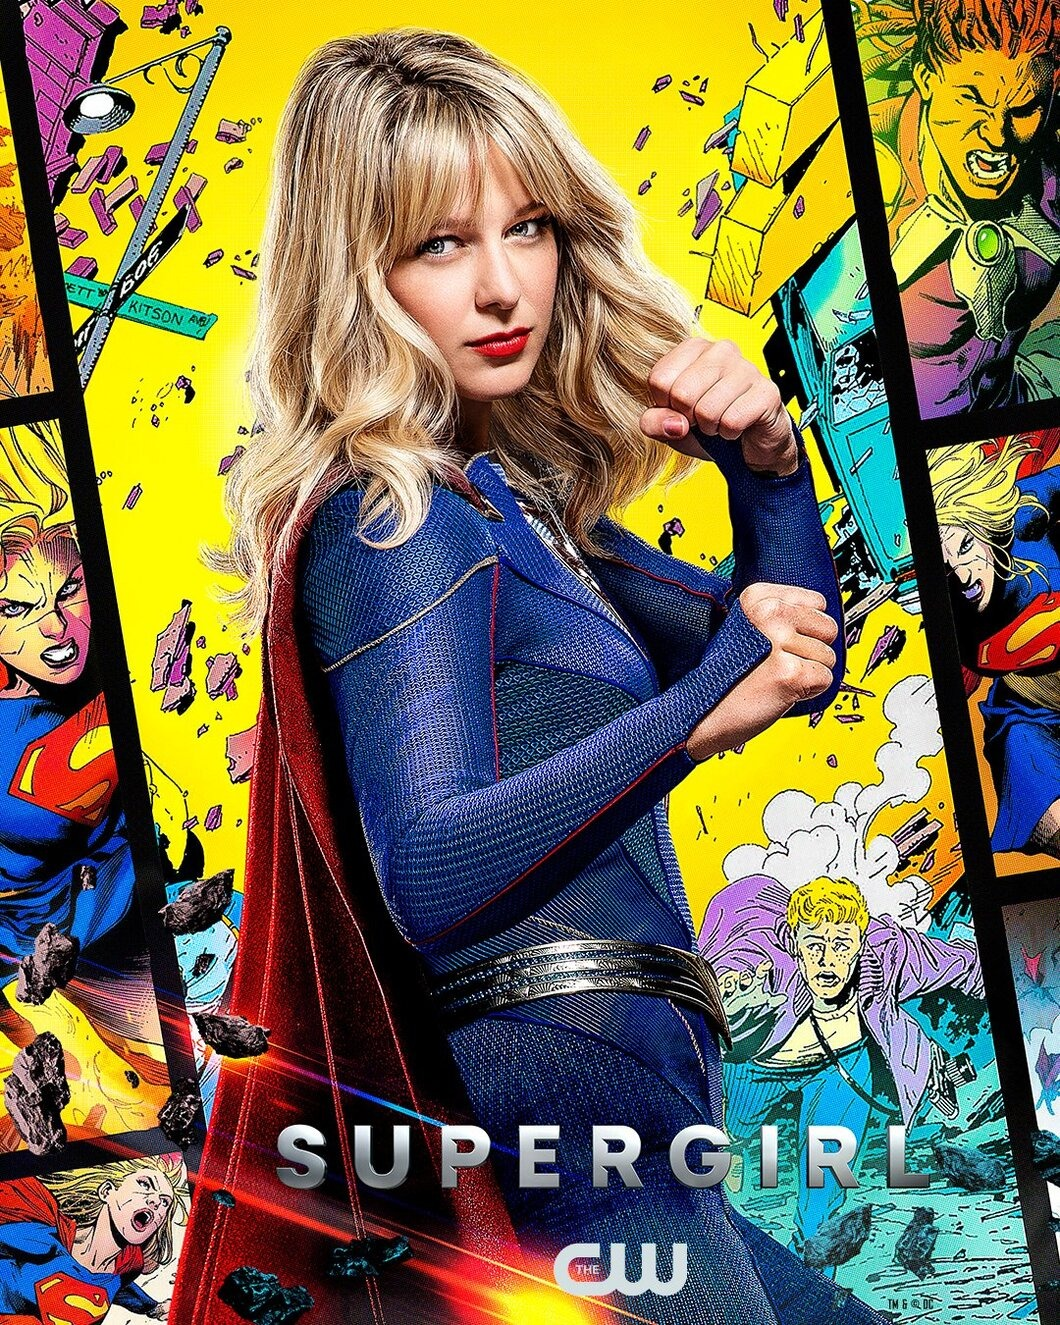 Supergirl.S05E10.HDTV.x264-KILLERS